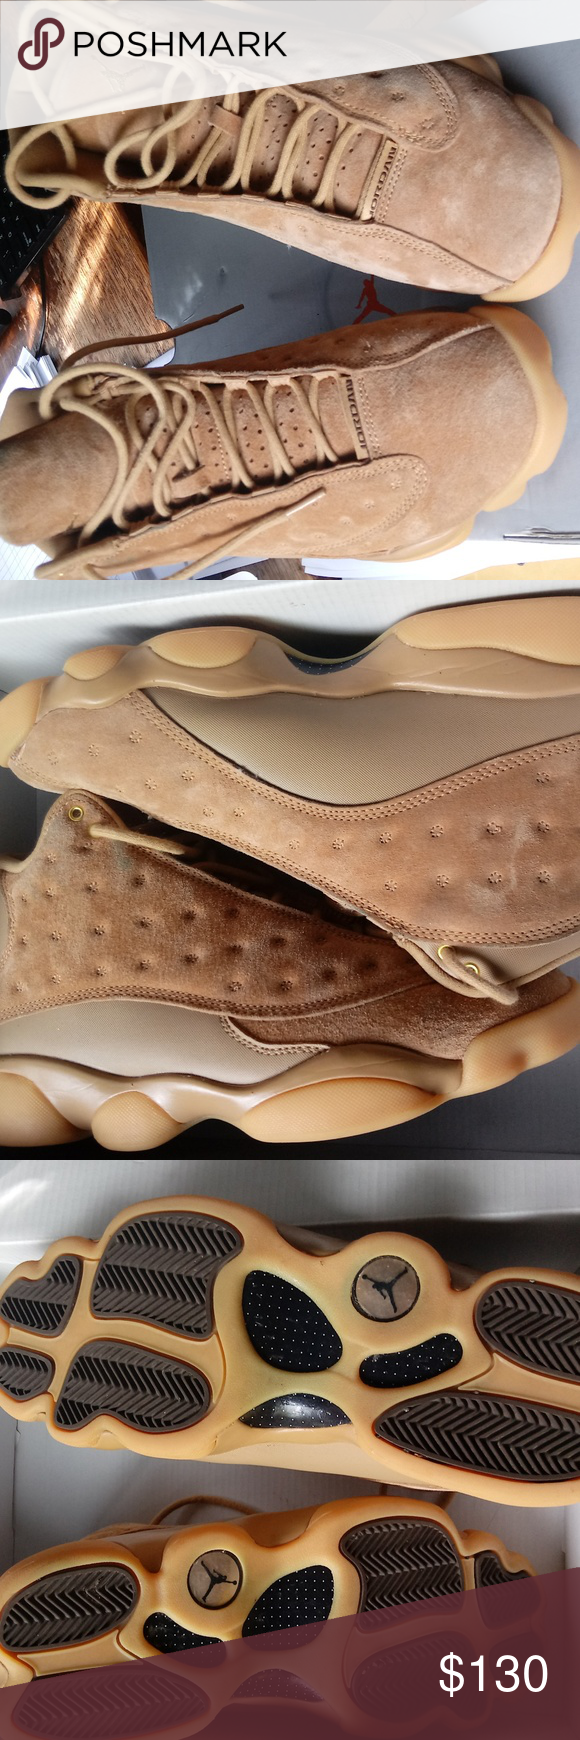 on sale a6b0d 7e0a7 Air Jordan Retro 13 Tan Suede worn maybe twice, Almost ...